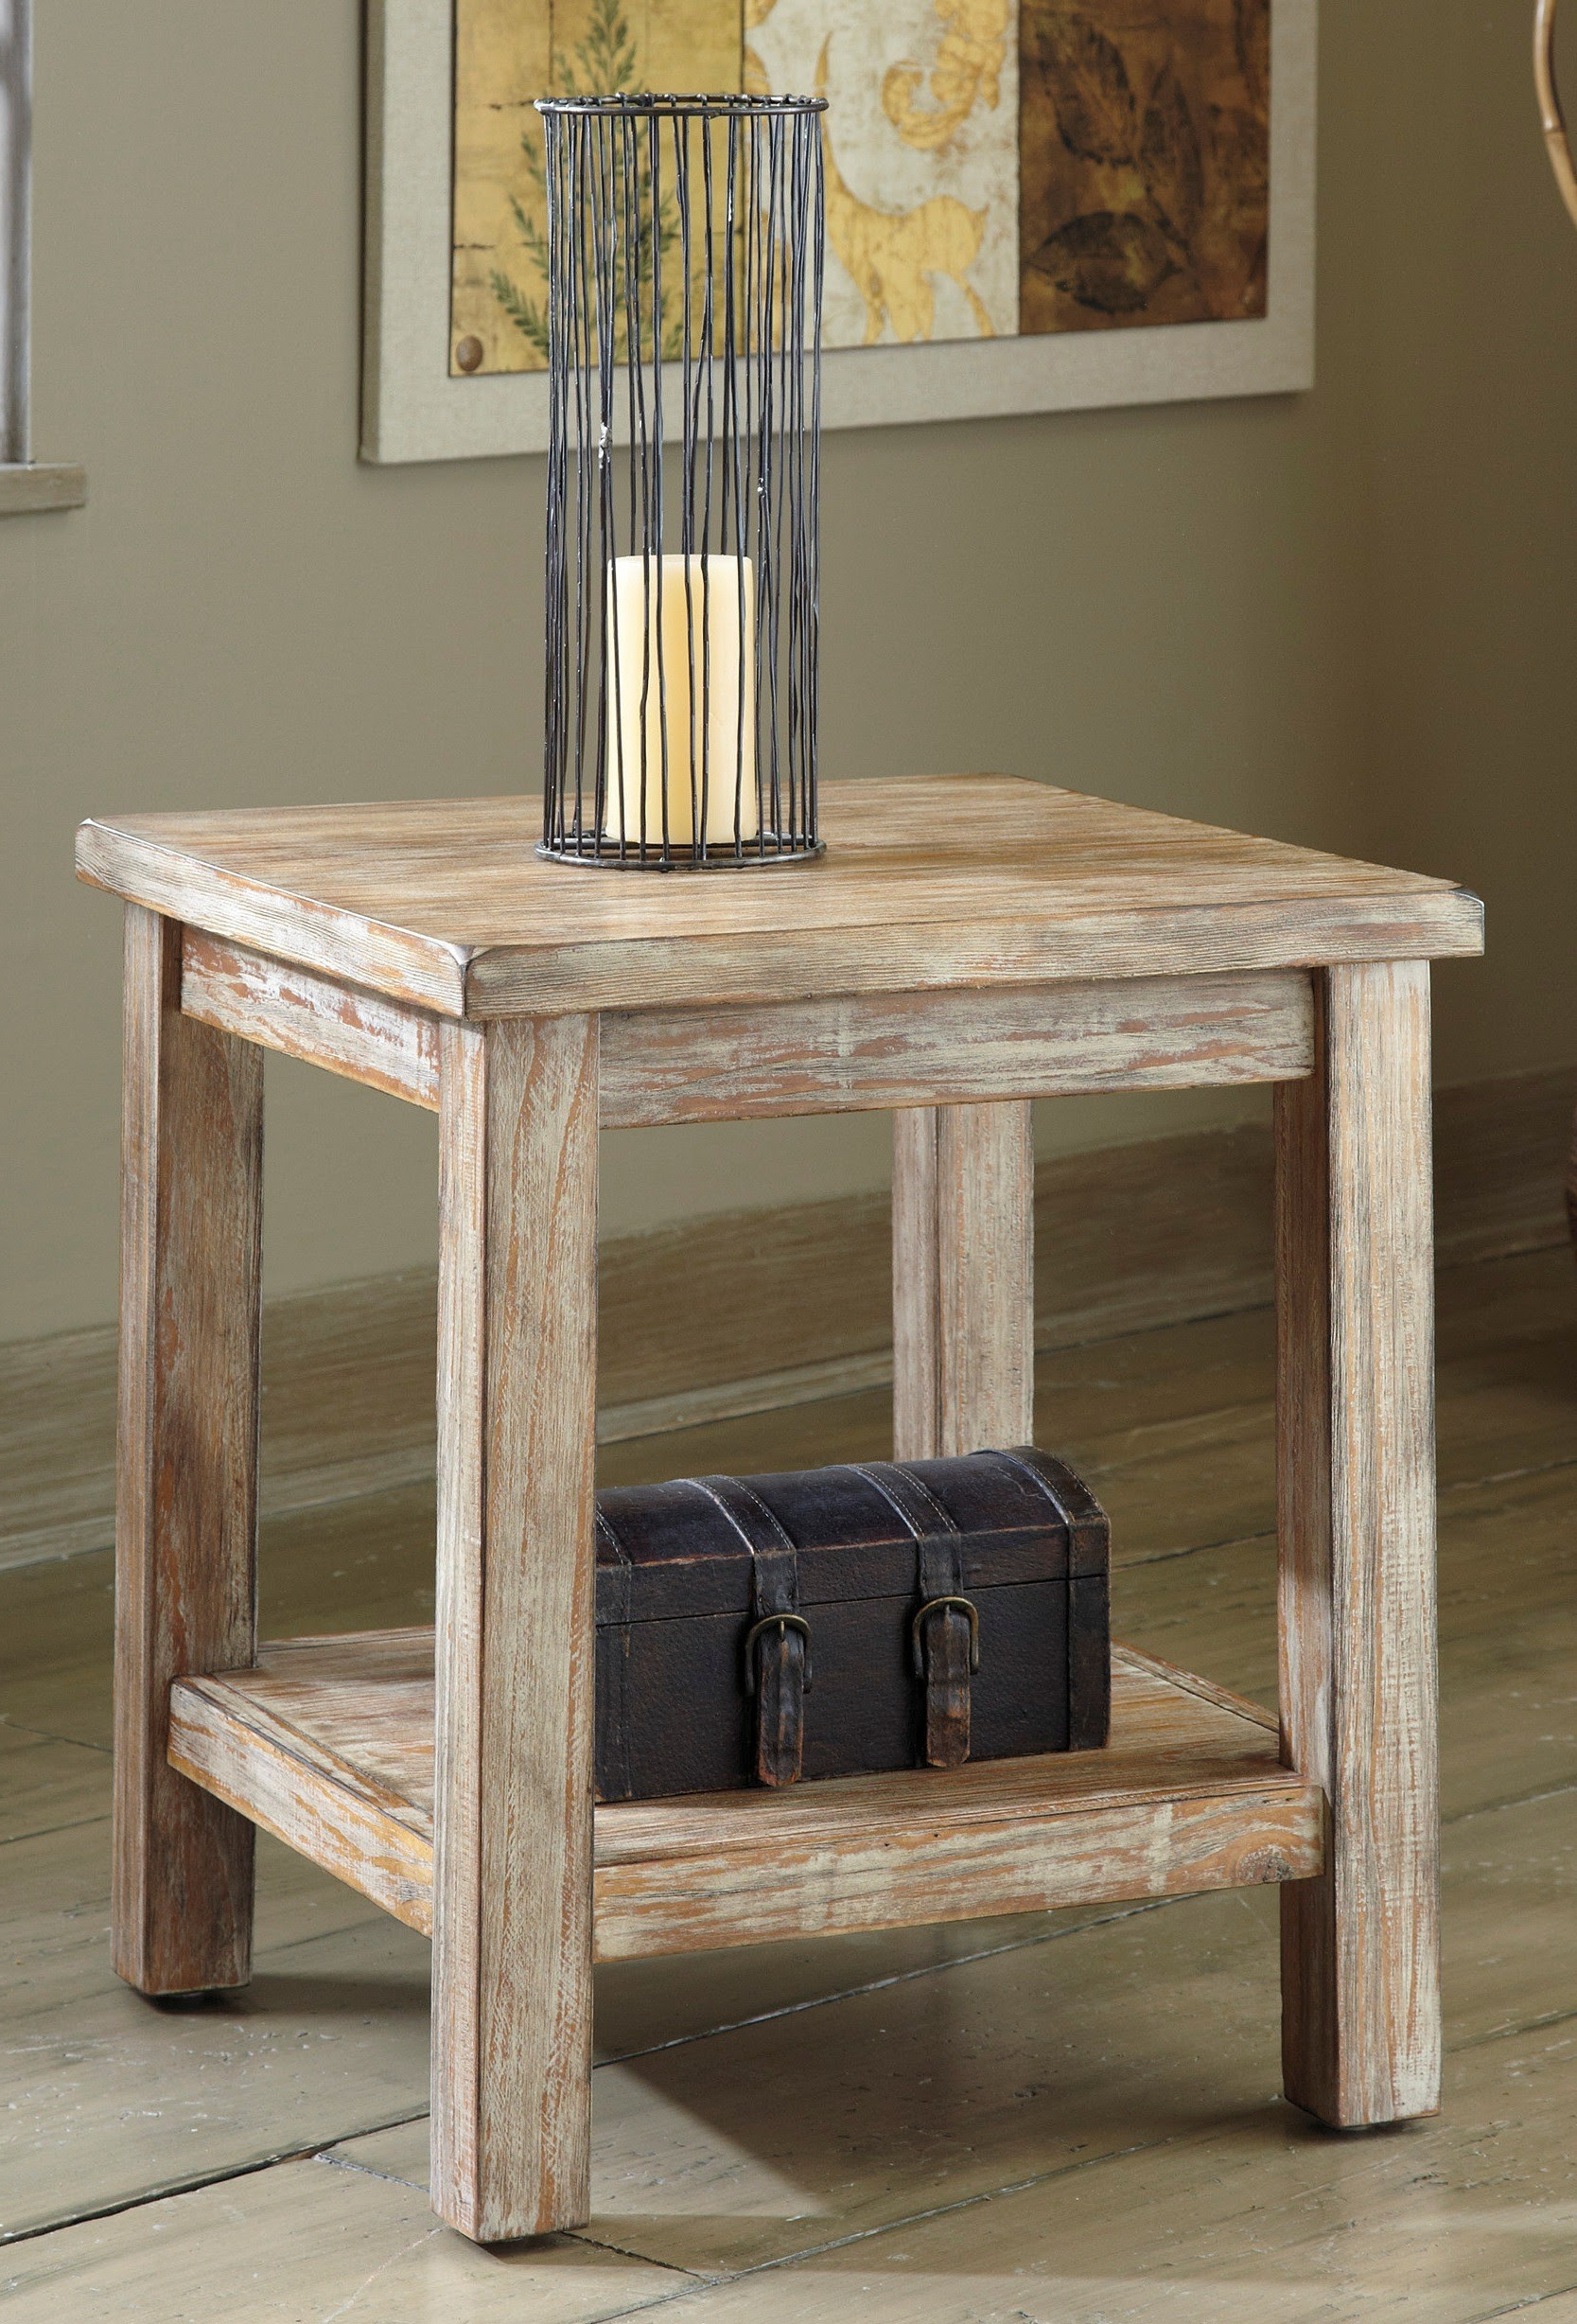 Living Room End Tables Furniture for Small Living Room